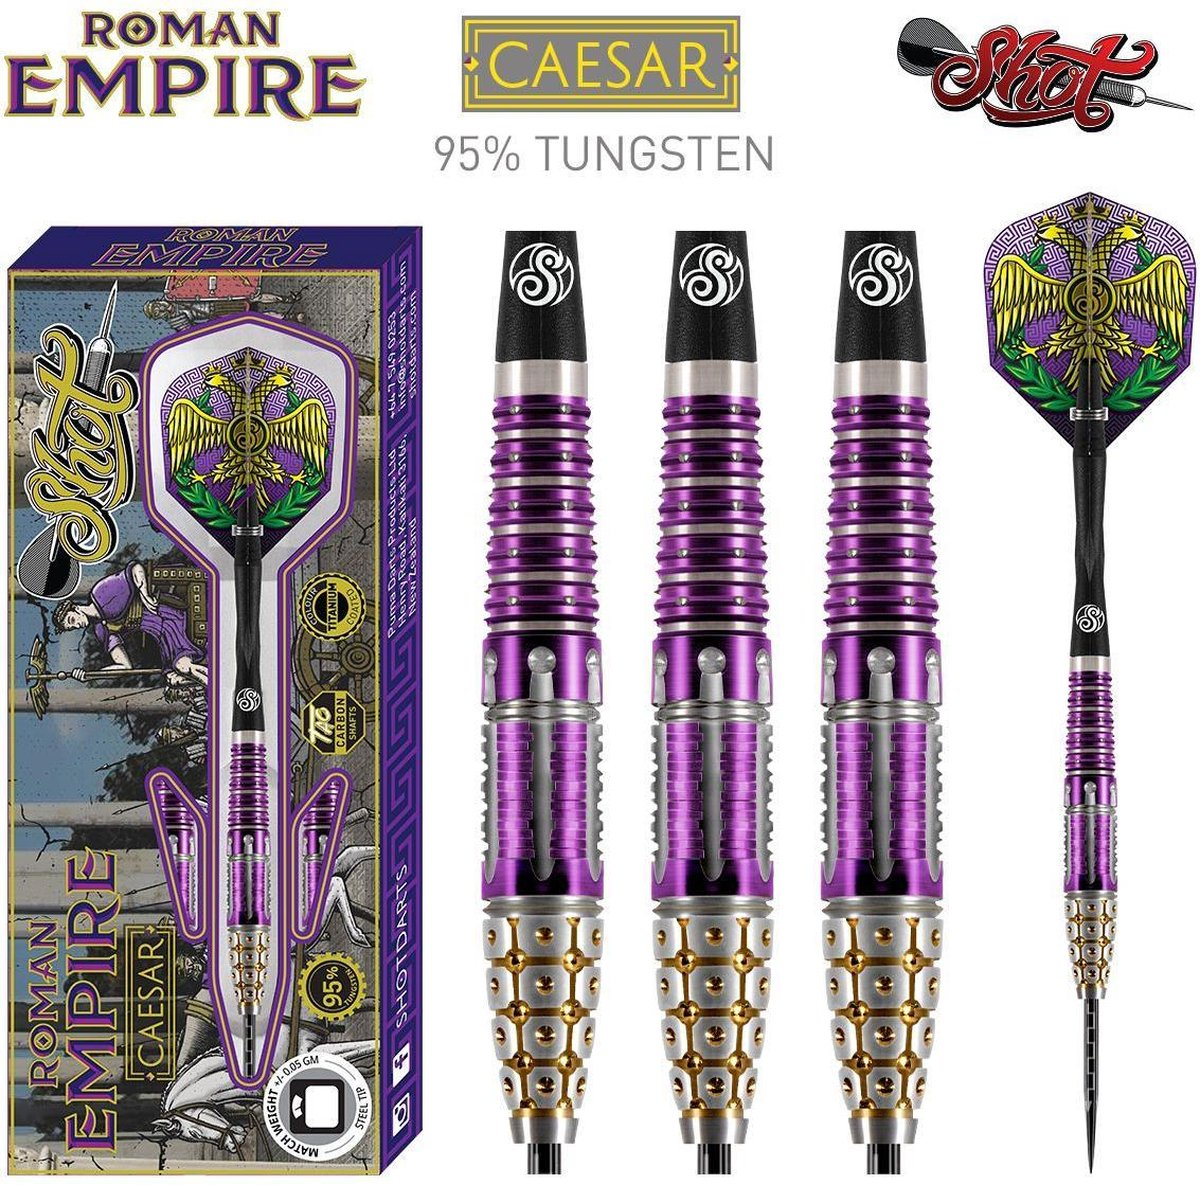 Roman Empire Caesar 95% Tungsten Titanium Coated 22 gram